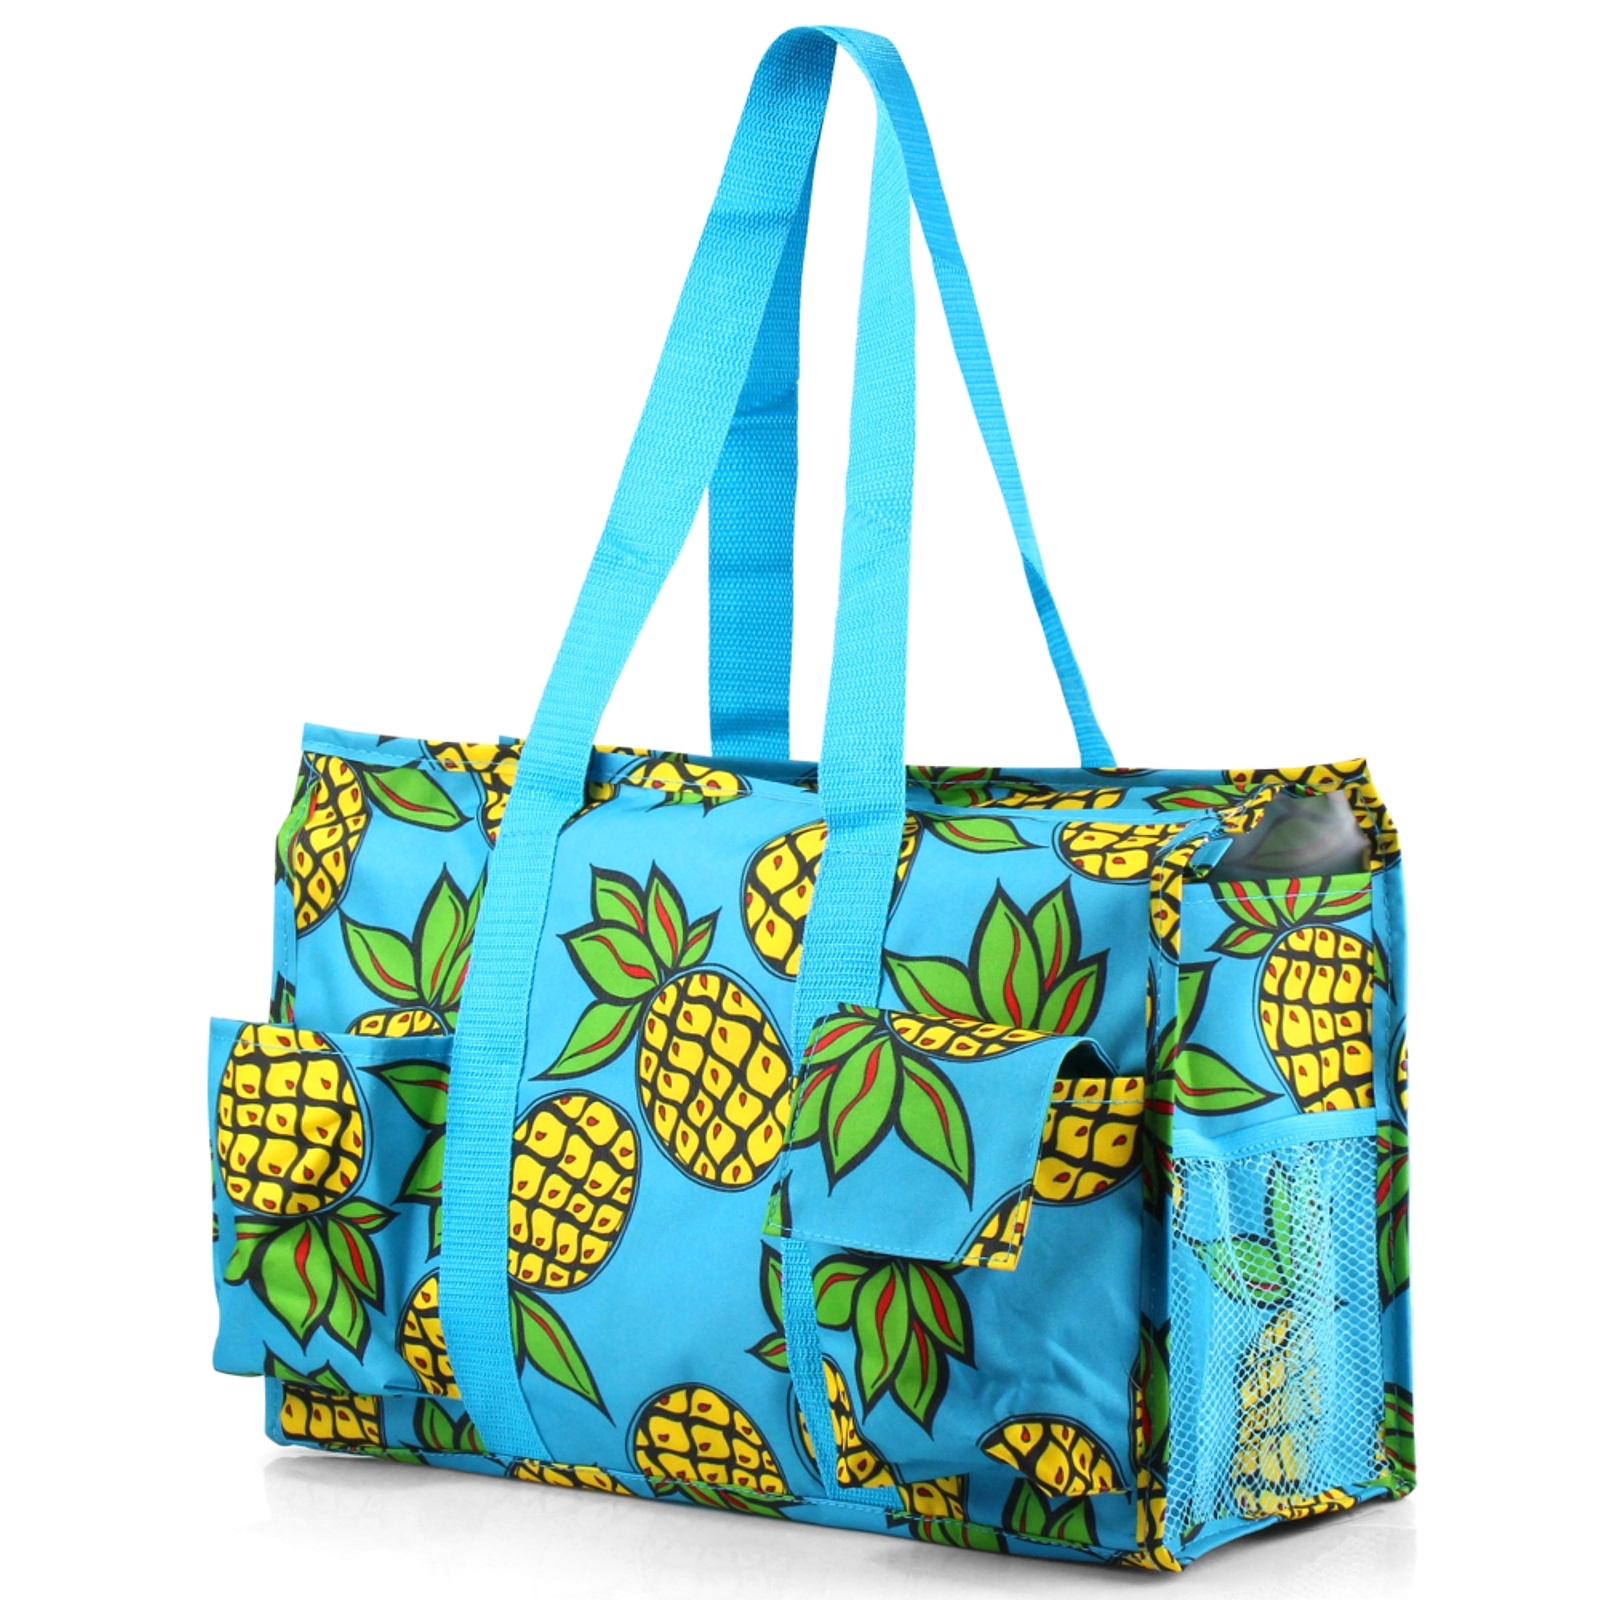 Zodaca Lightweight All Purpose Handbag Large Utility Shoulder Tote Carry Bag for Camping Travel Laundry Shopping - Pineapple